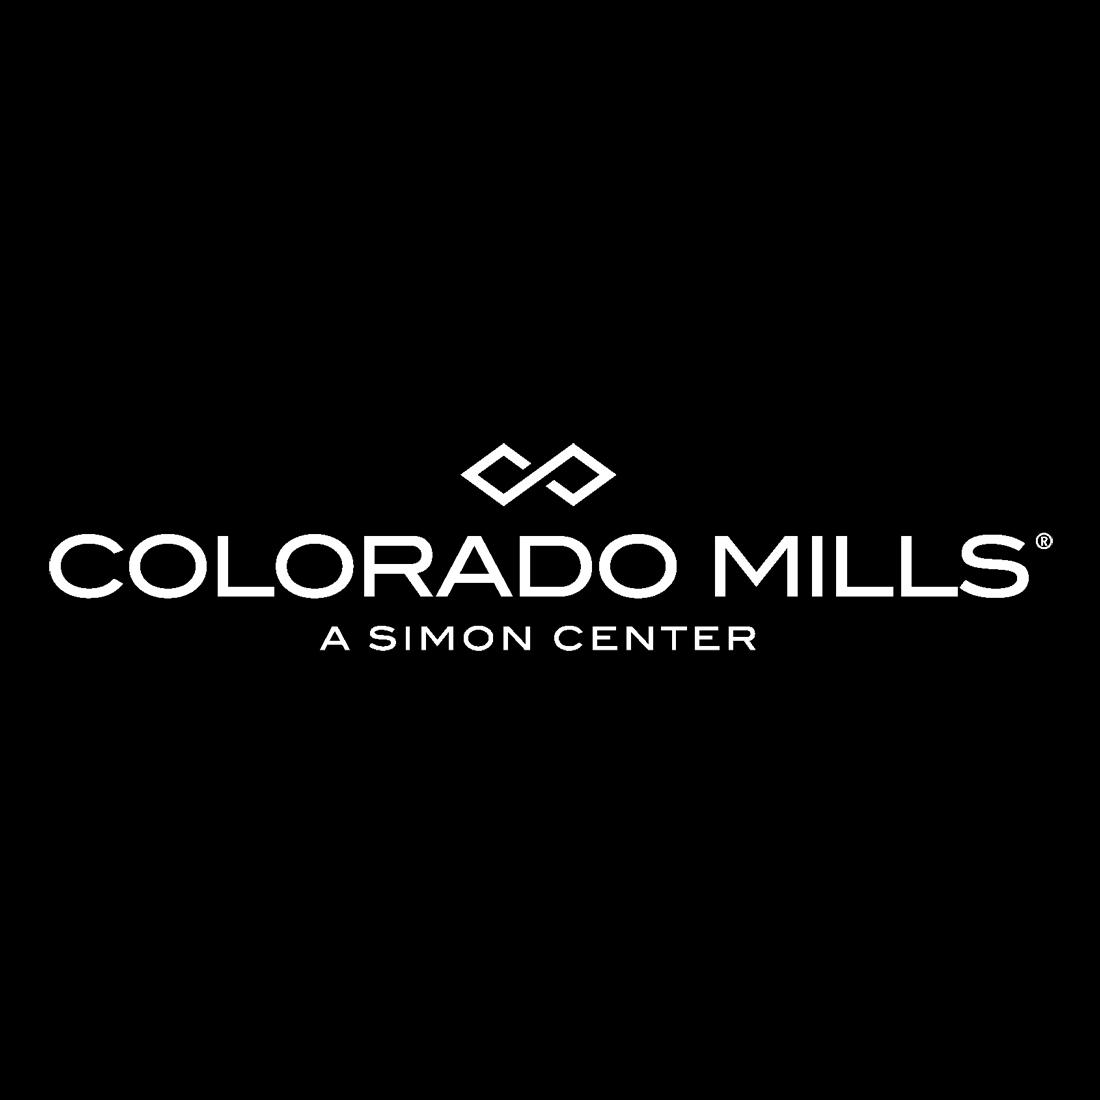 Best Restaurants Near Colorado Mills